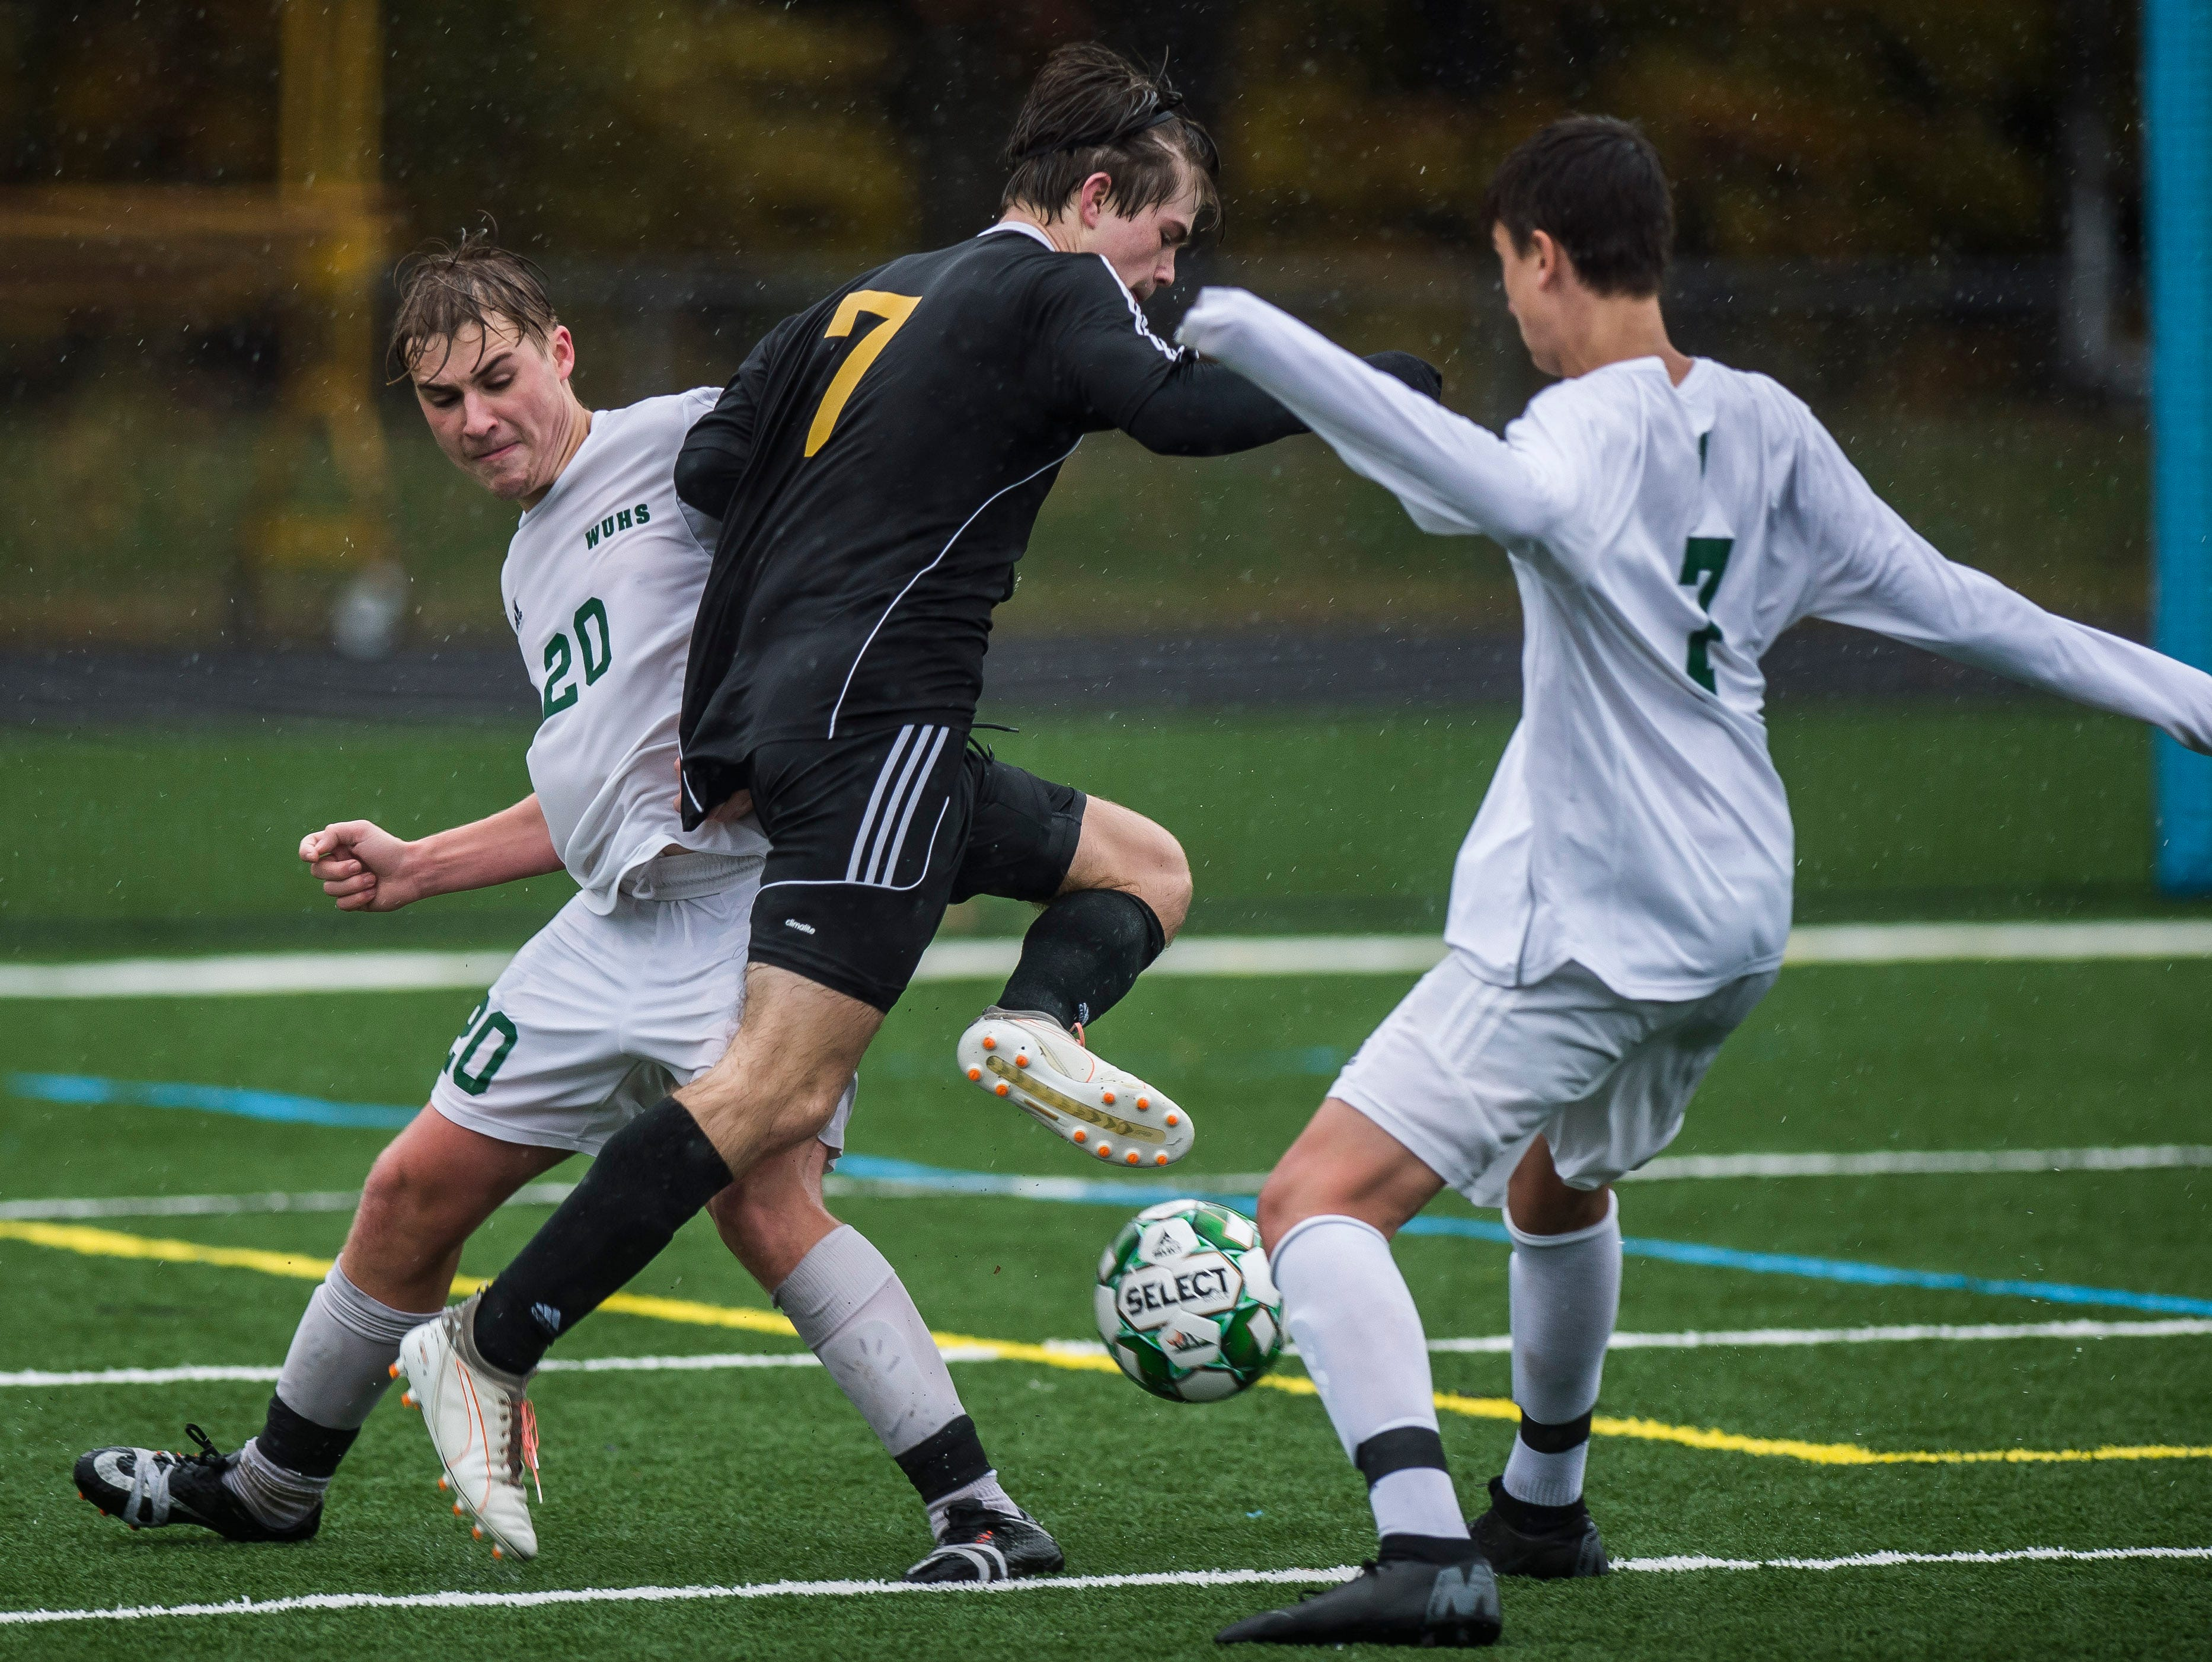 Hardwood #7 Hayden Adams splits Woodstock #20 Lucas Piconi and #7 Harrison Morse during their Div. 2 Vermont State high school boy's soccer championship game at South Burlington High School on Saturday, Nov. 3, 2018. Hardwood Union won, 3-0.